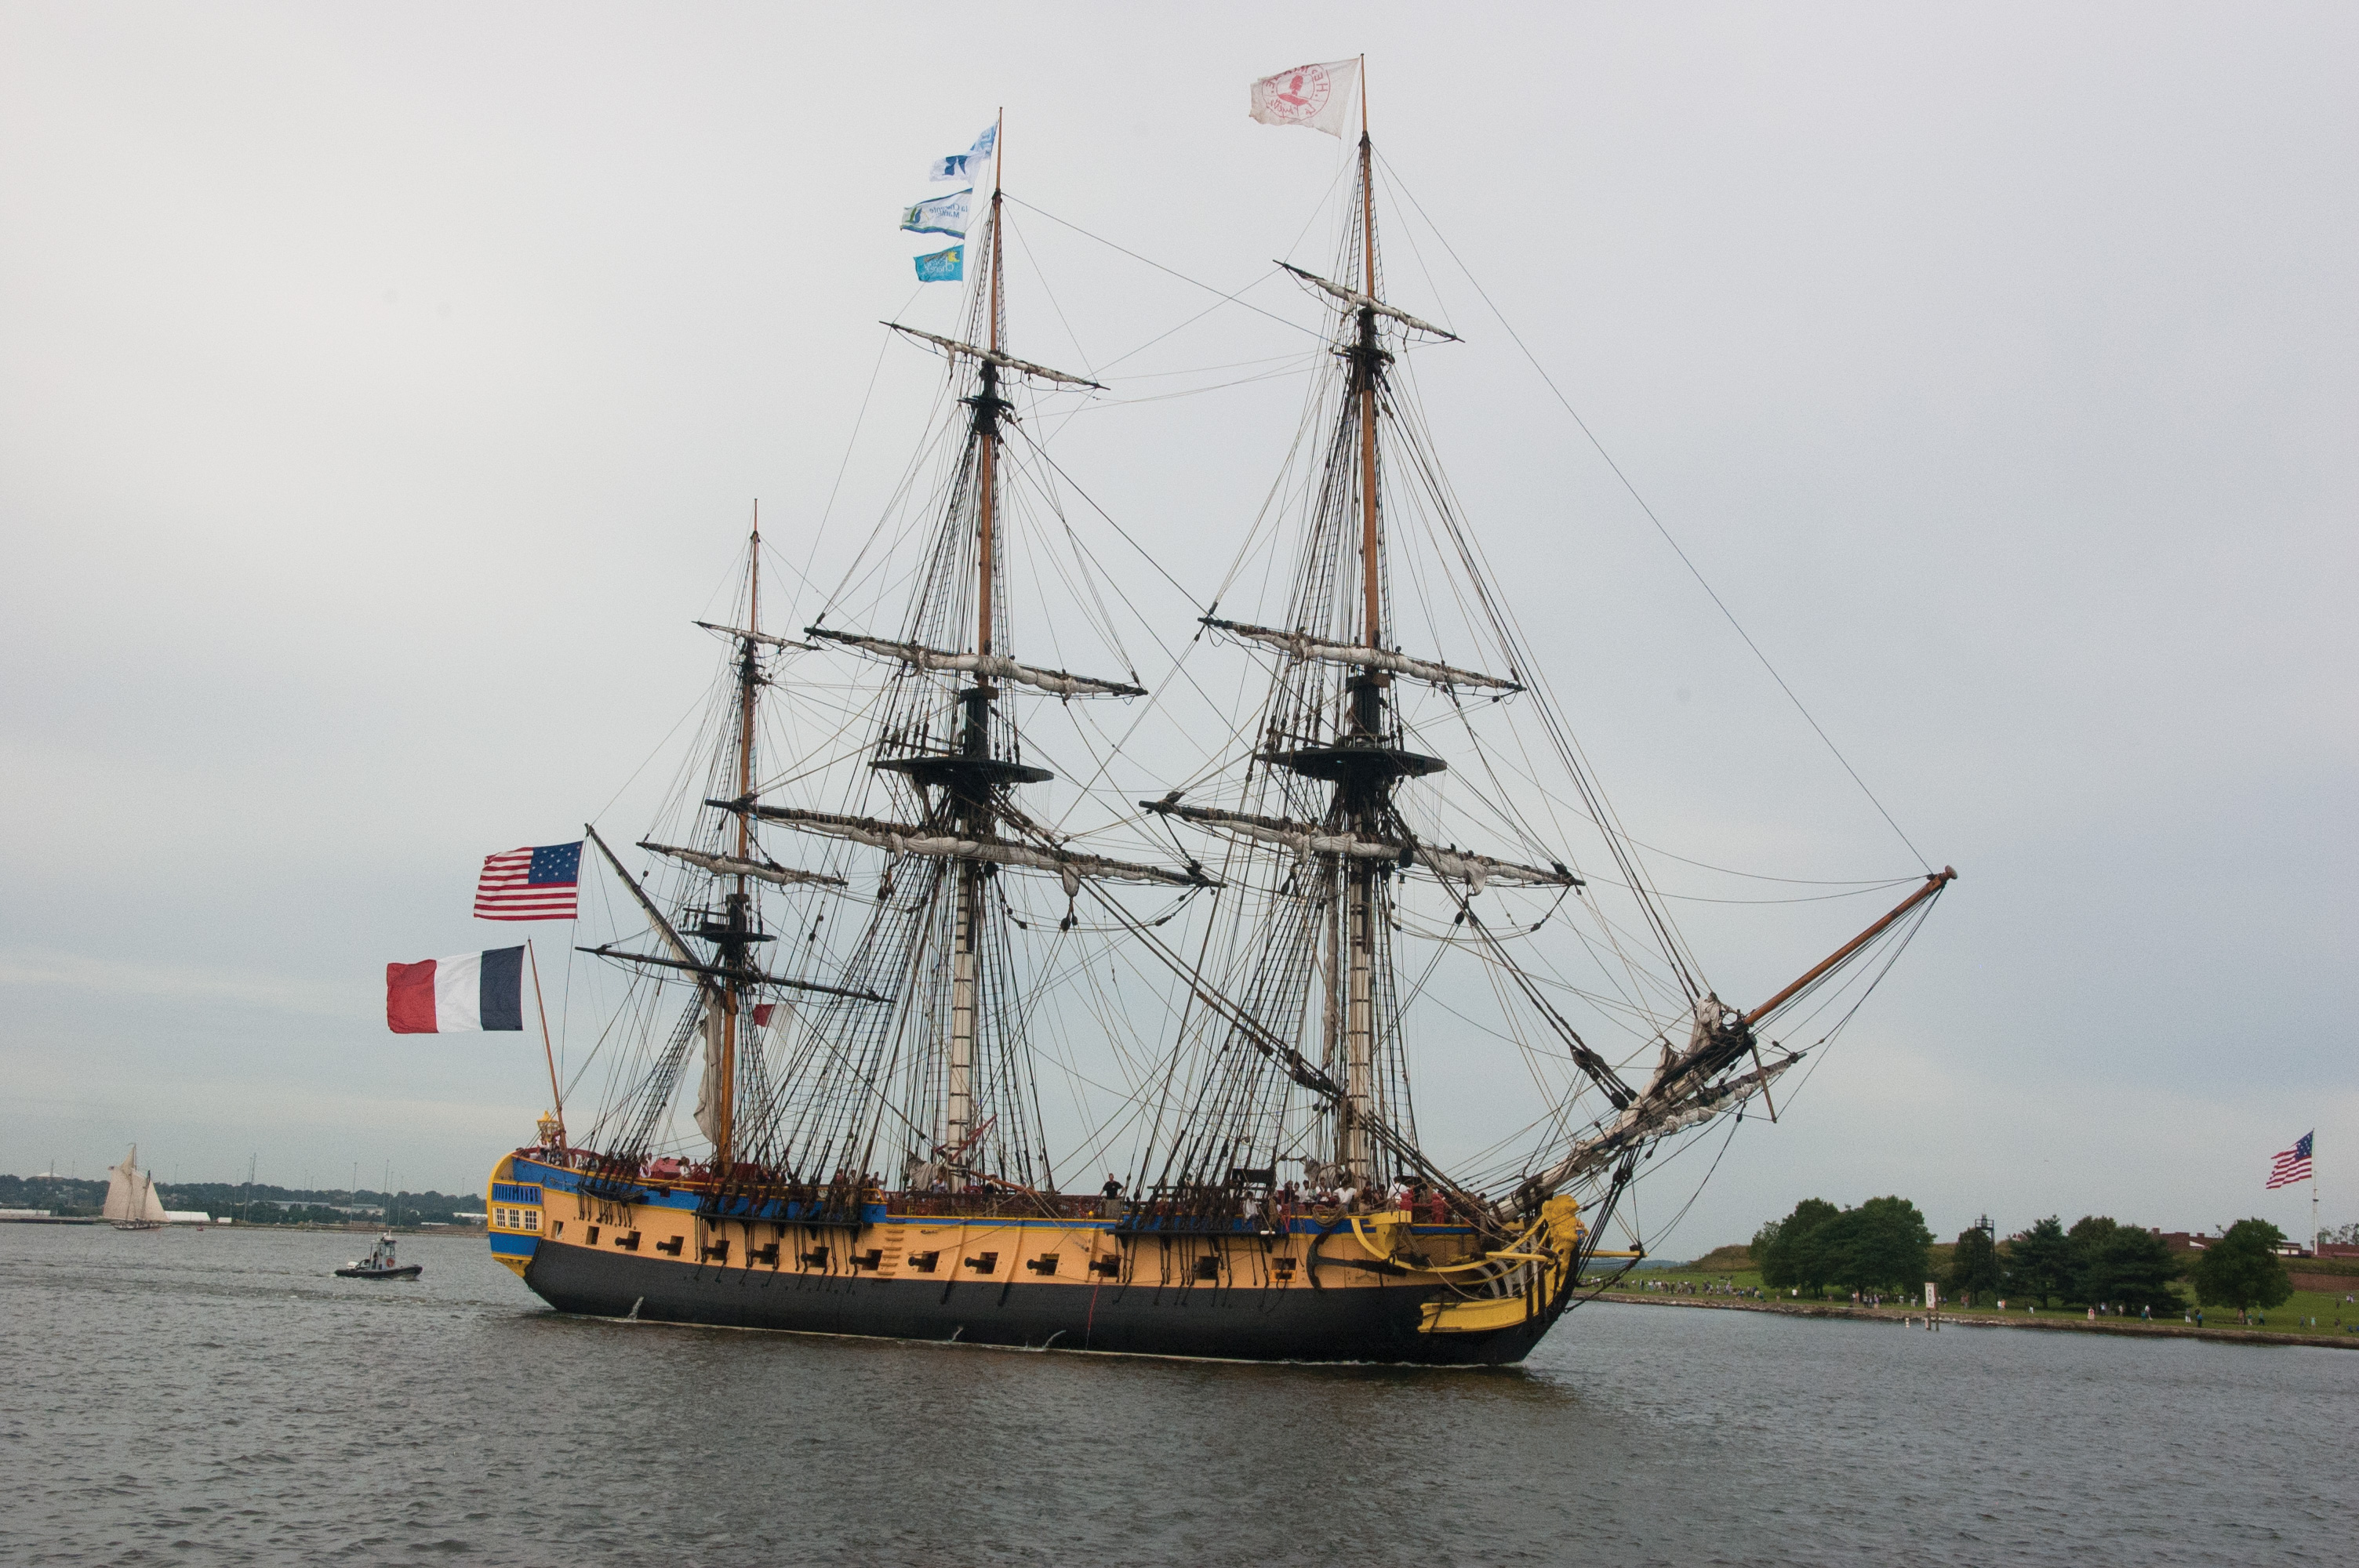 The replica French frigate Hermione sails past Fort McHenry on its way into the Inner Harbor. USNI News photo.